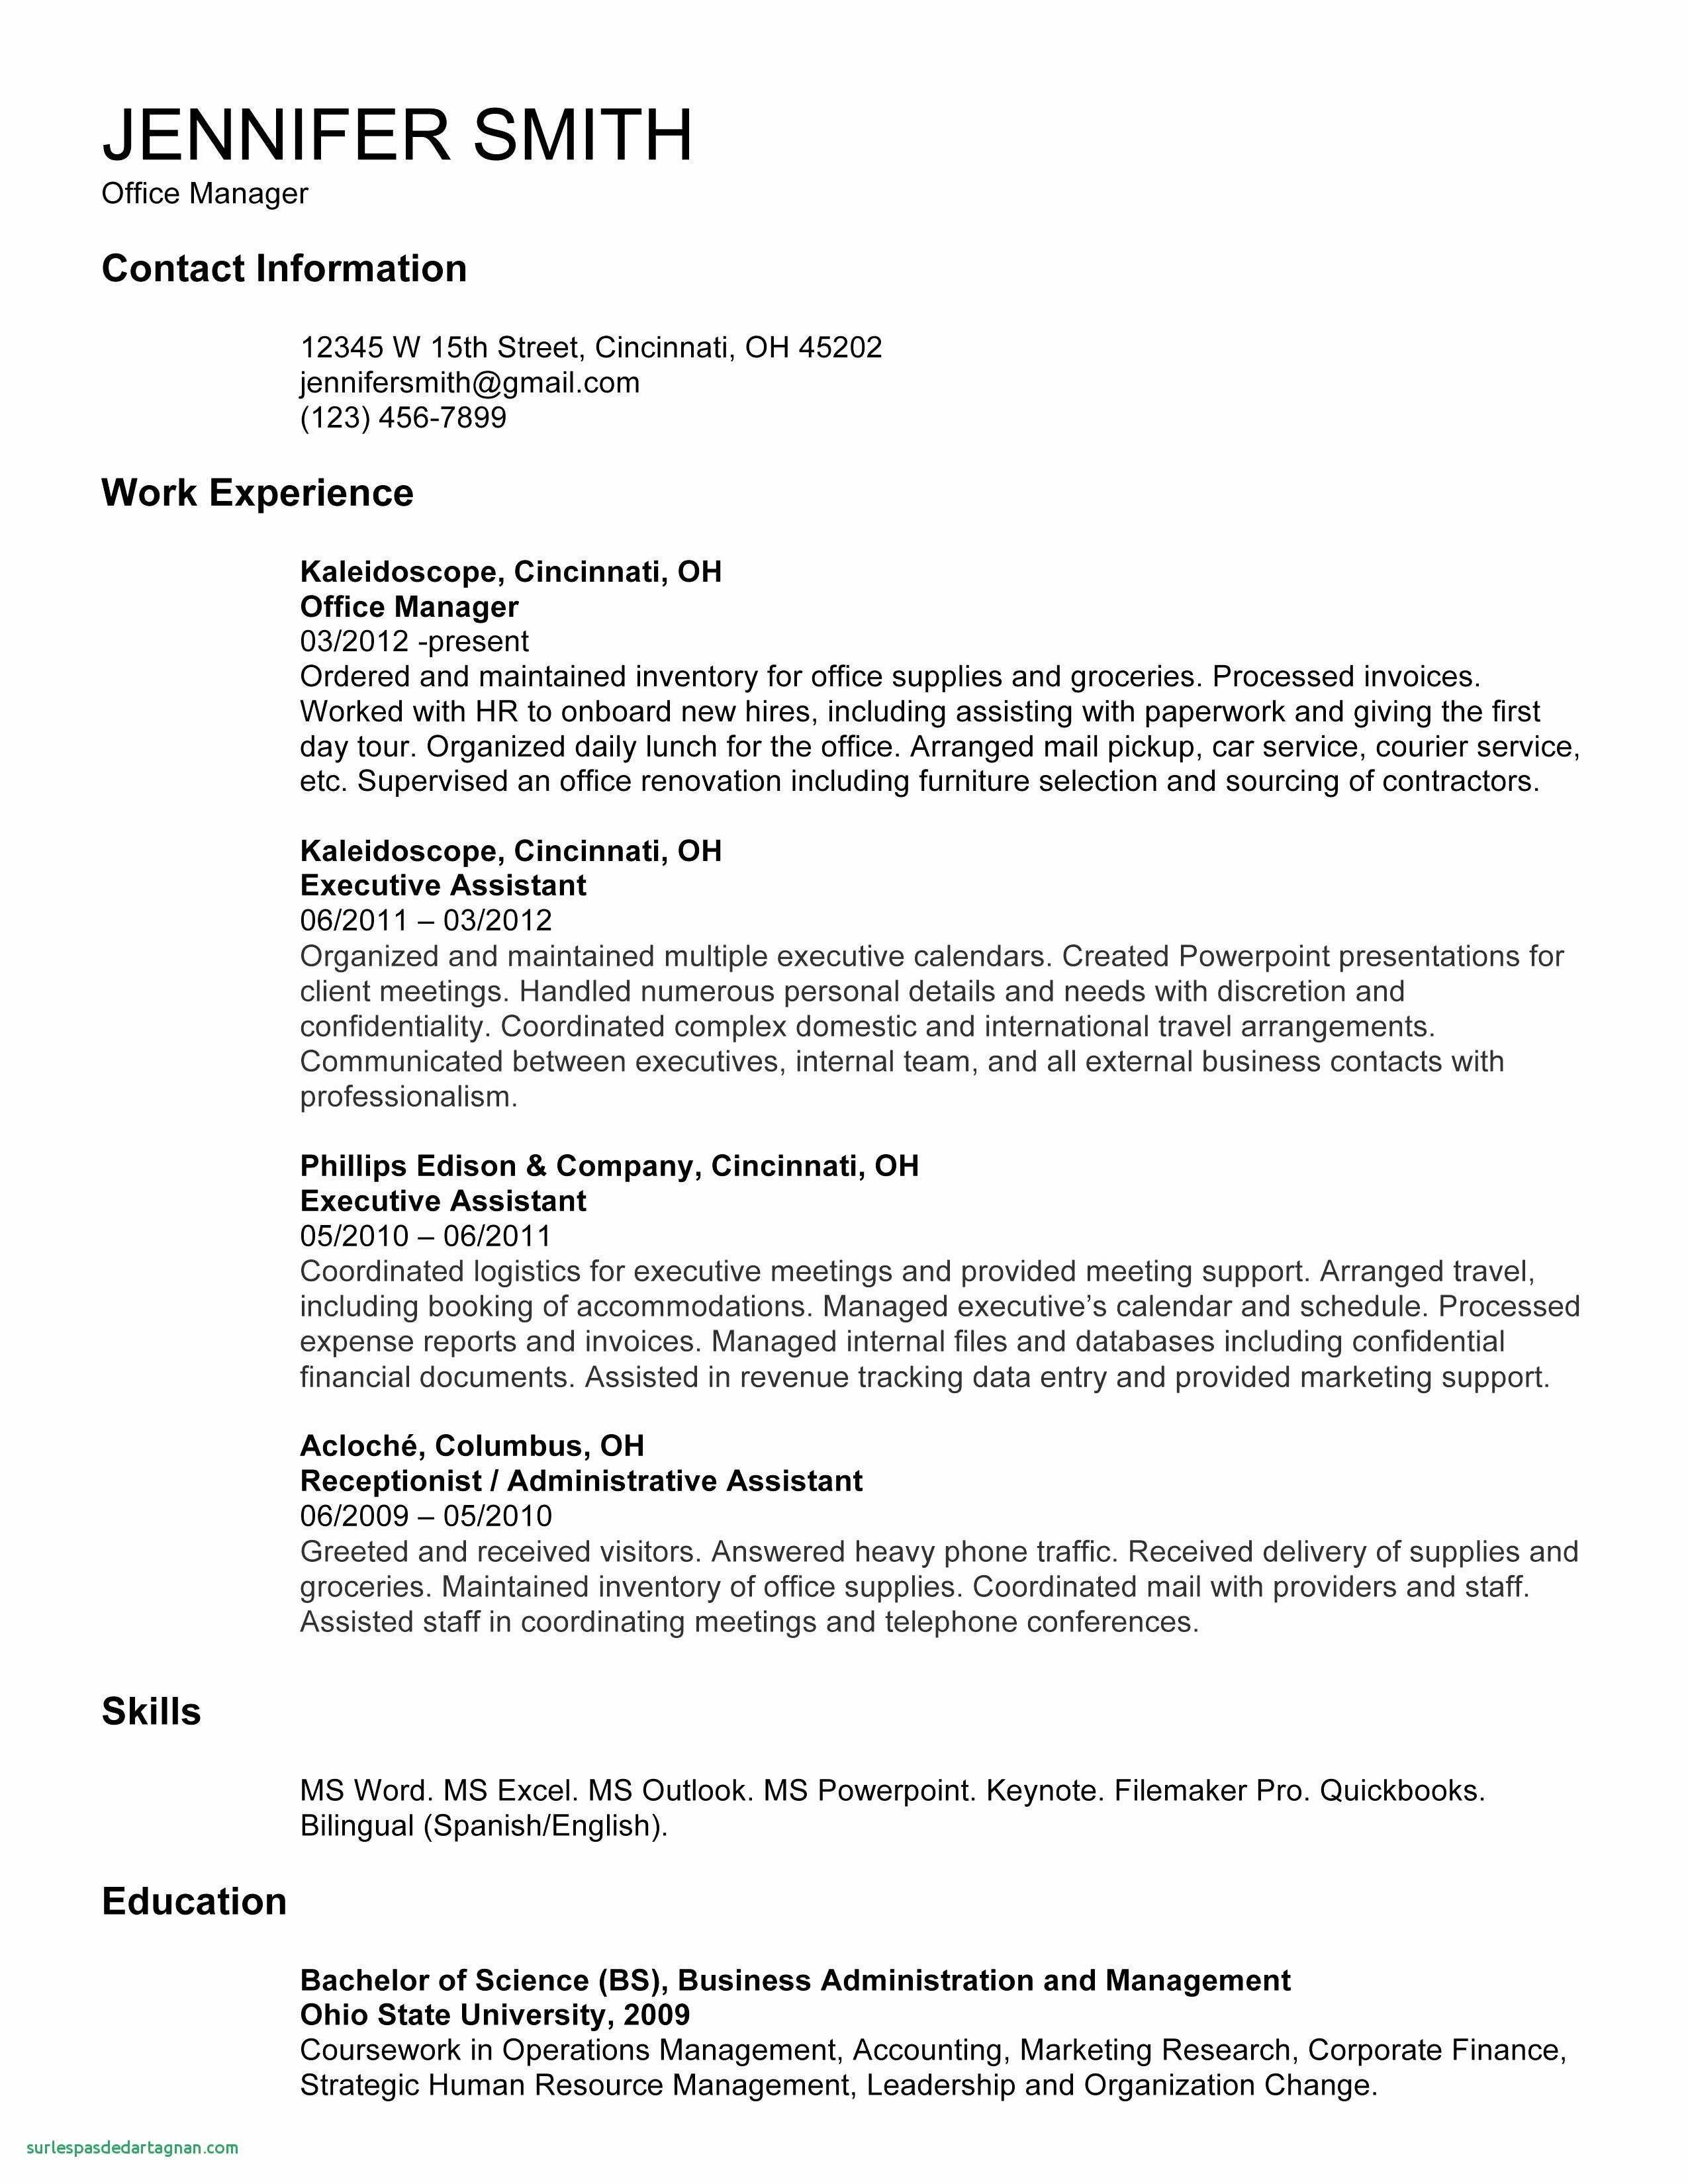 Office Resume Templates - Resume Template Download Free Unique ¢Ë†Å¡ Resume Template Download